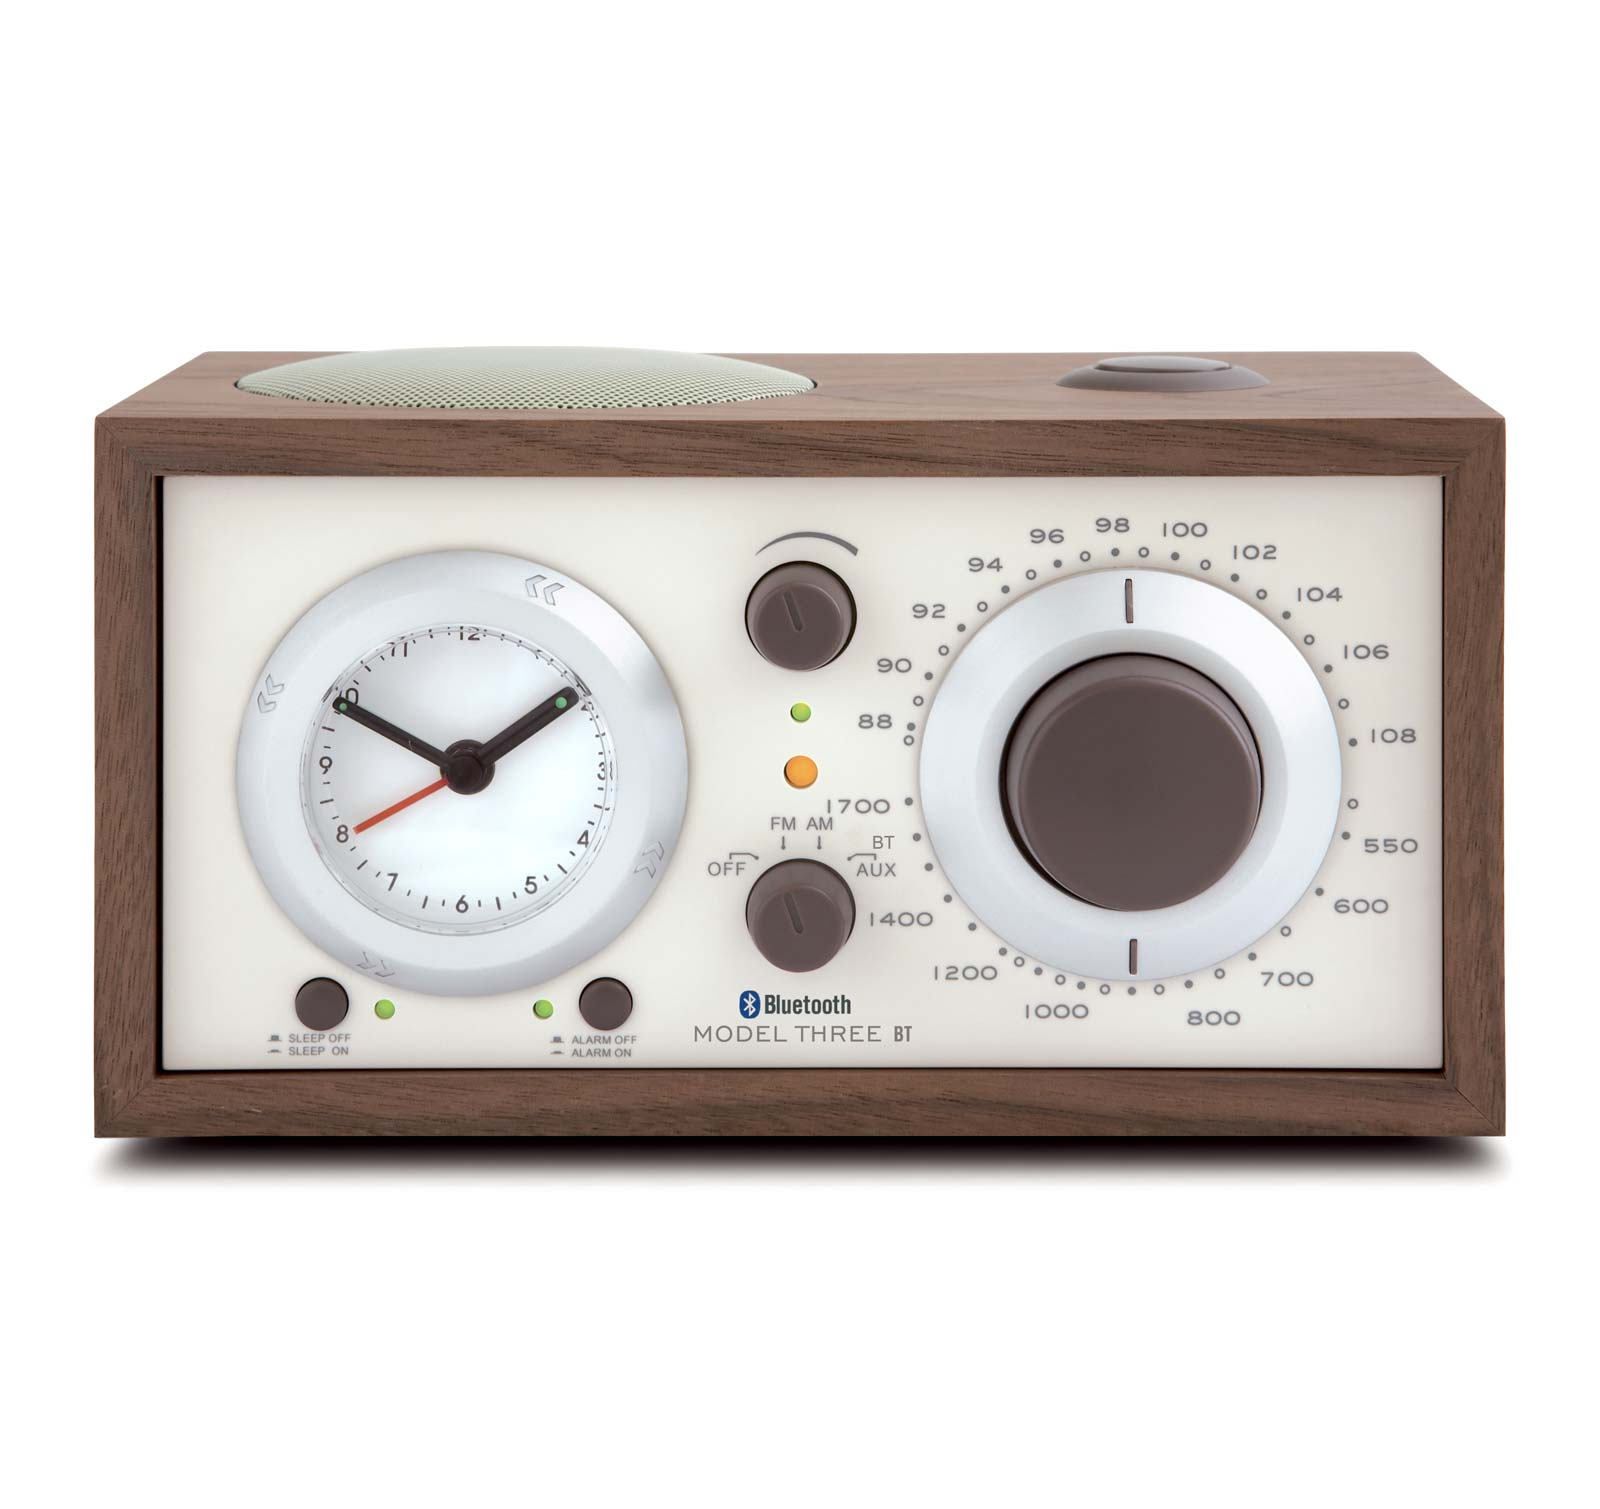 Tivoli Audio Model Three BT Walnut Beige AM FM Clock Radio with Bluetooth by Tivoli